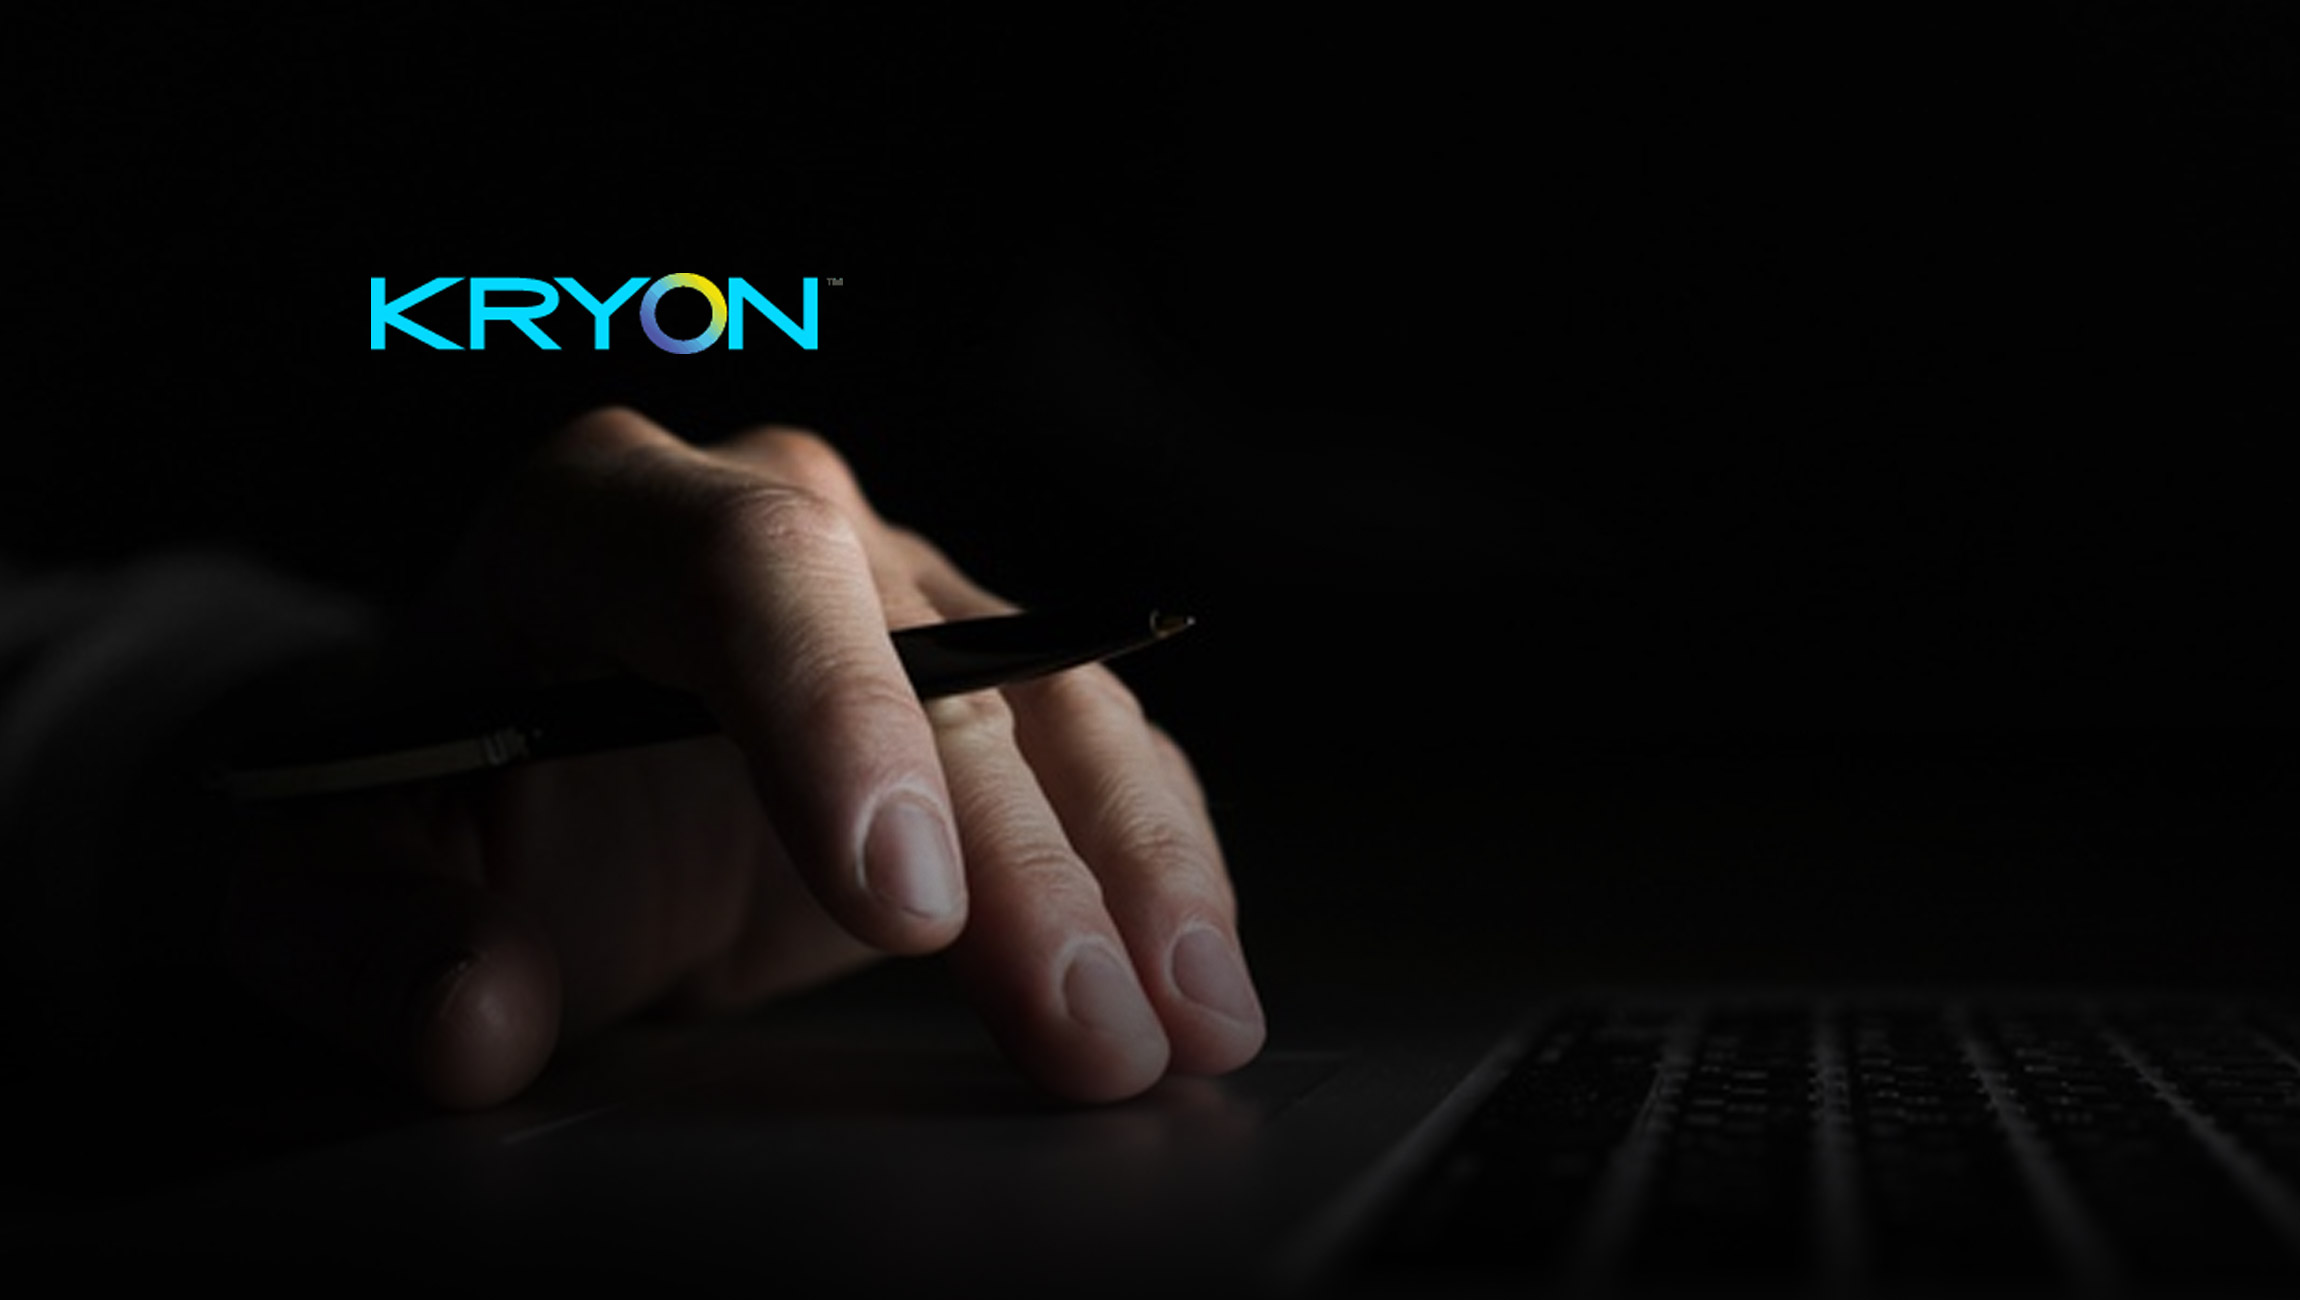 Kryon Launches Industry-First Full Cycle Automation-as-a-Service Powered by AWS